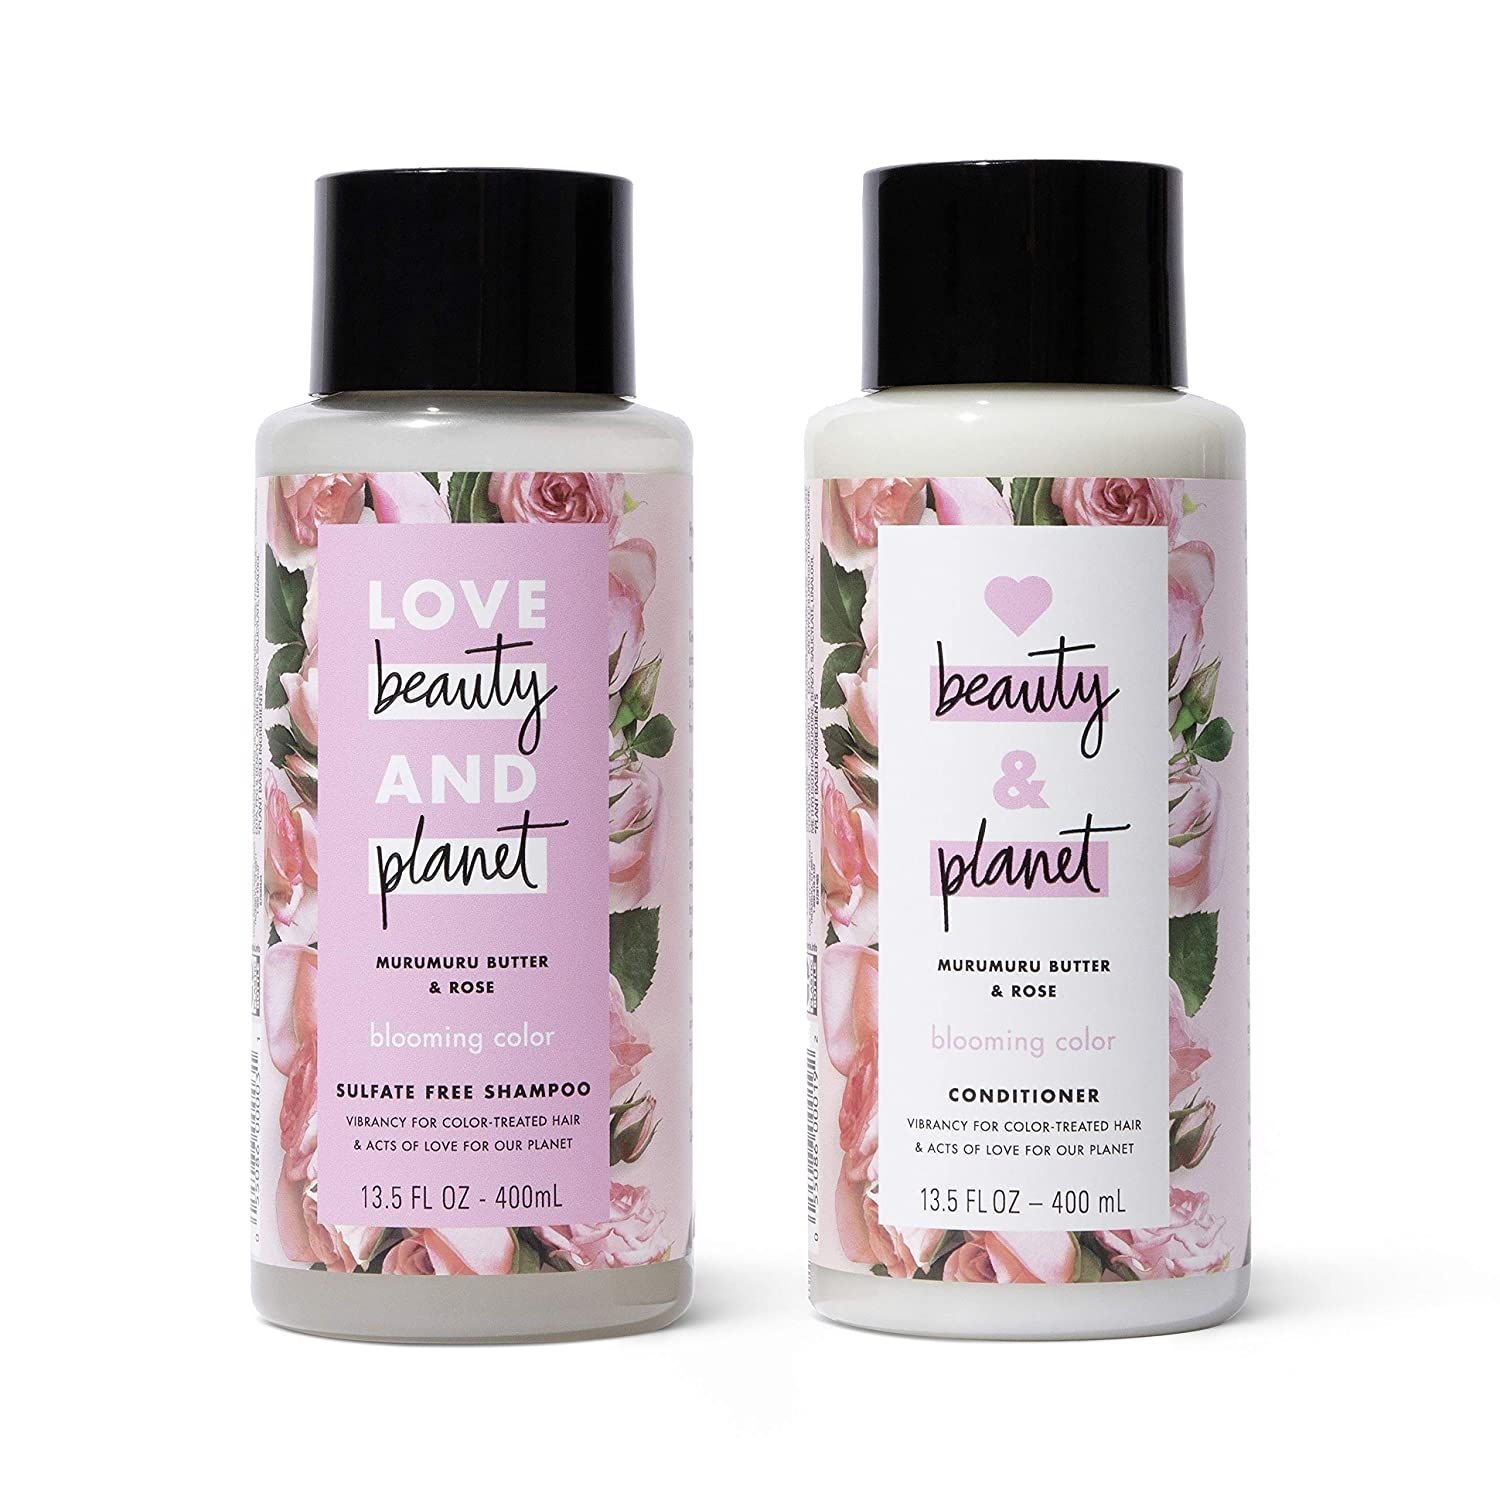 Ylang Ylang Oil Love Beauty Planet Rose Shampoo And Conditioner For Color Treated Hair Silicone Rose Shampoo Beauty Planet Cruelty Free Shampoos